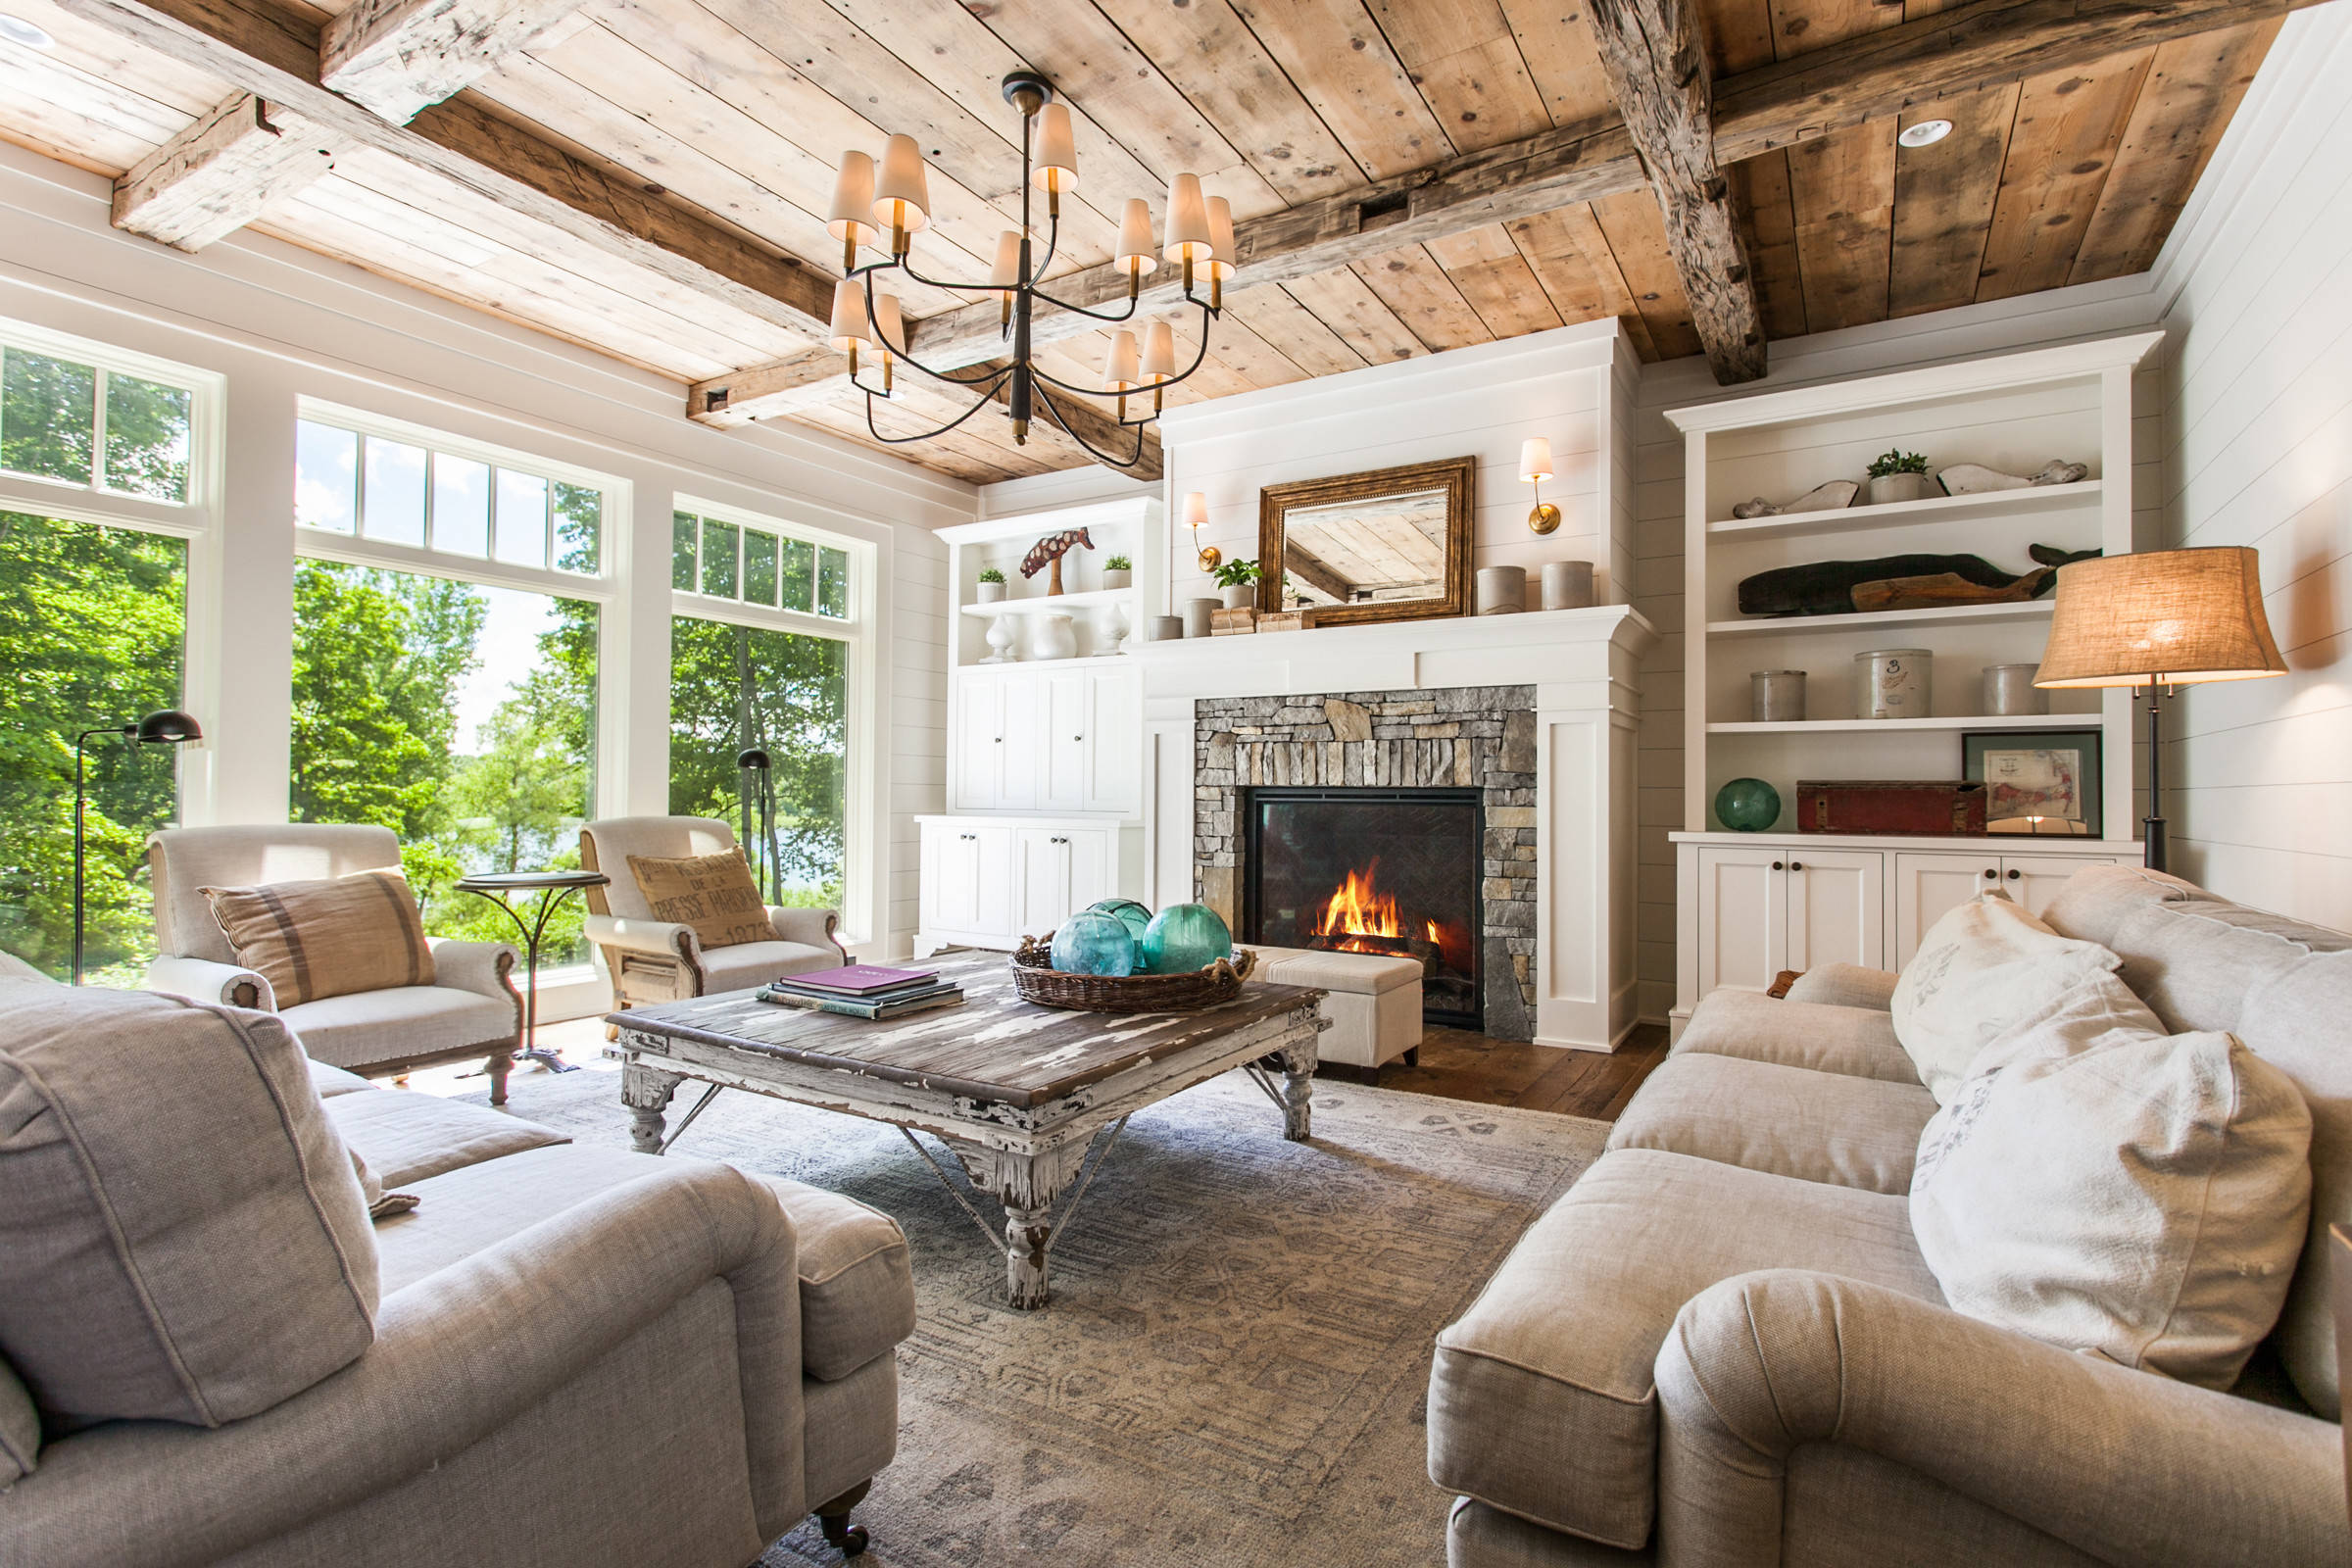 75 Beautiful Farmhouse Living Room With A Stone Fireplace Pictures Ideas October 2020 Houzz